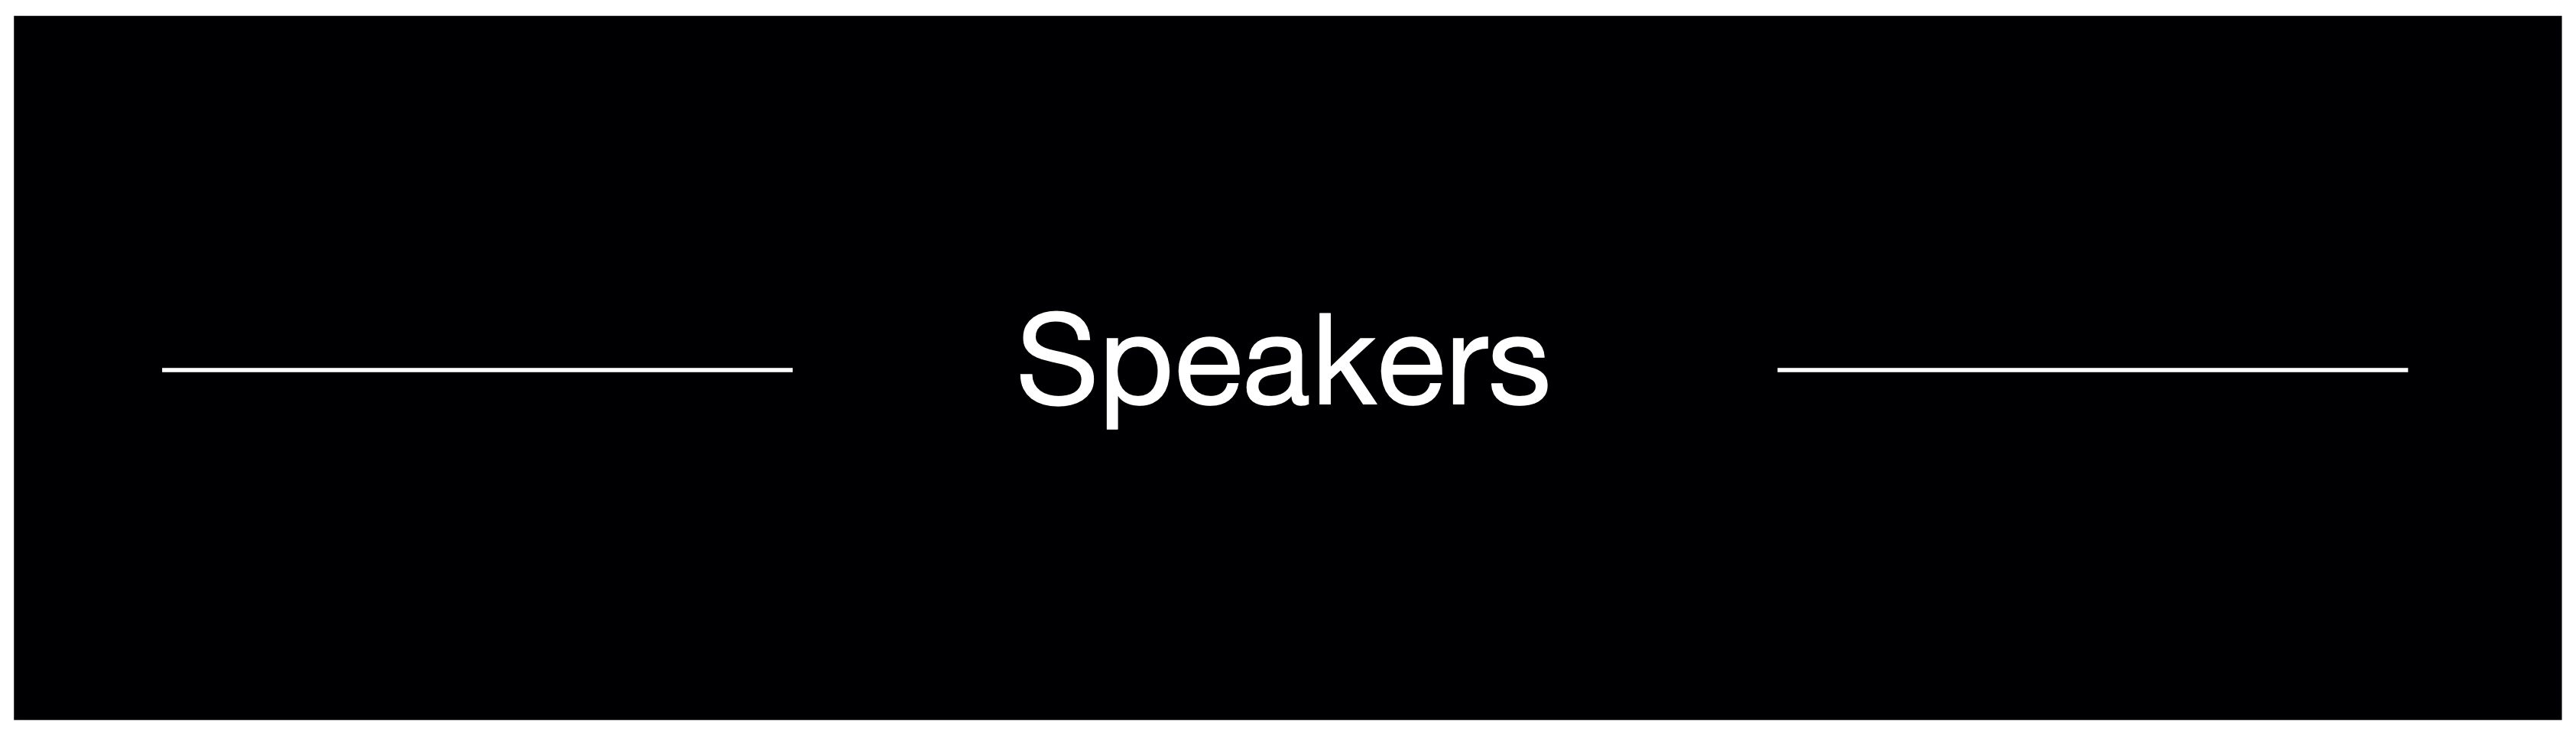 speakers-logo.jpg